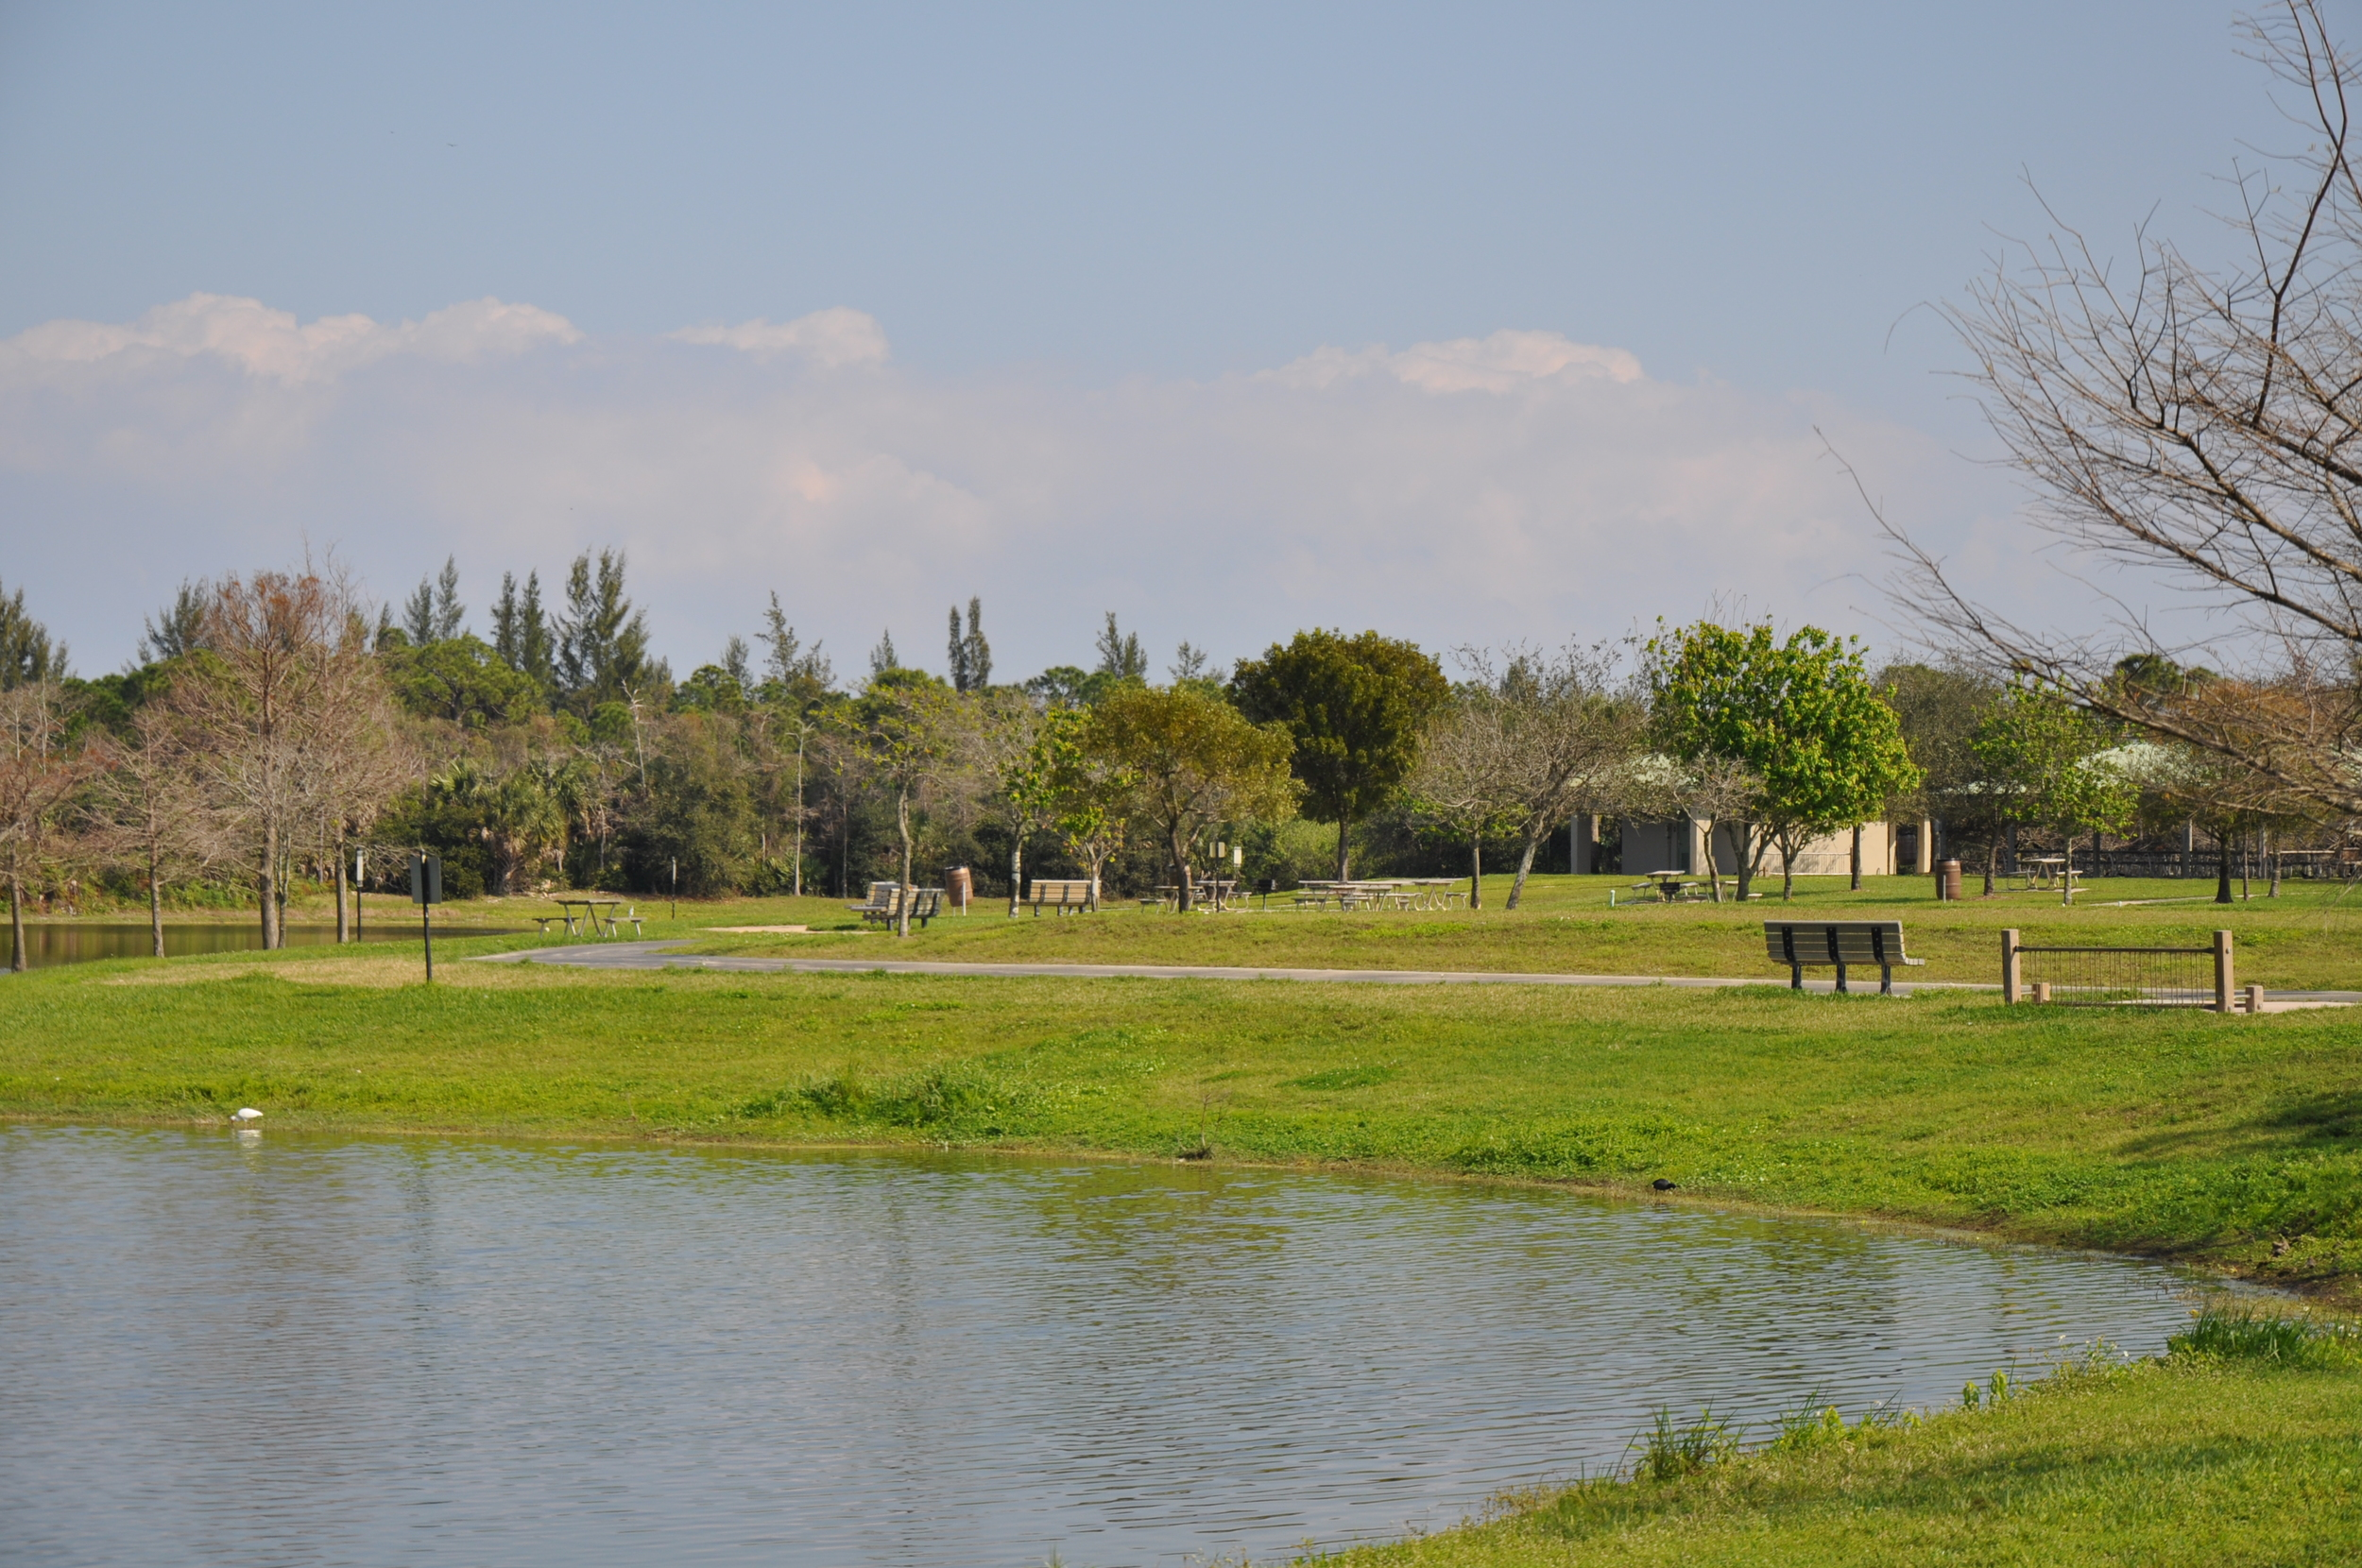 Dyer Landfill Reclamation Palm Beach County Florida Seating Areas by the Lake.JPG